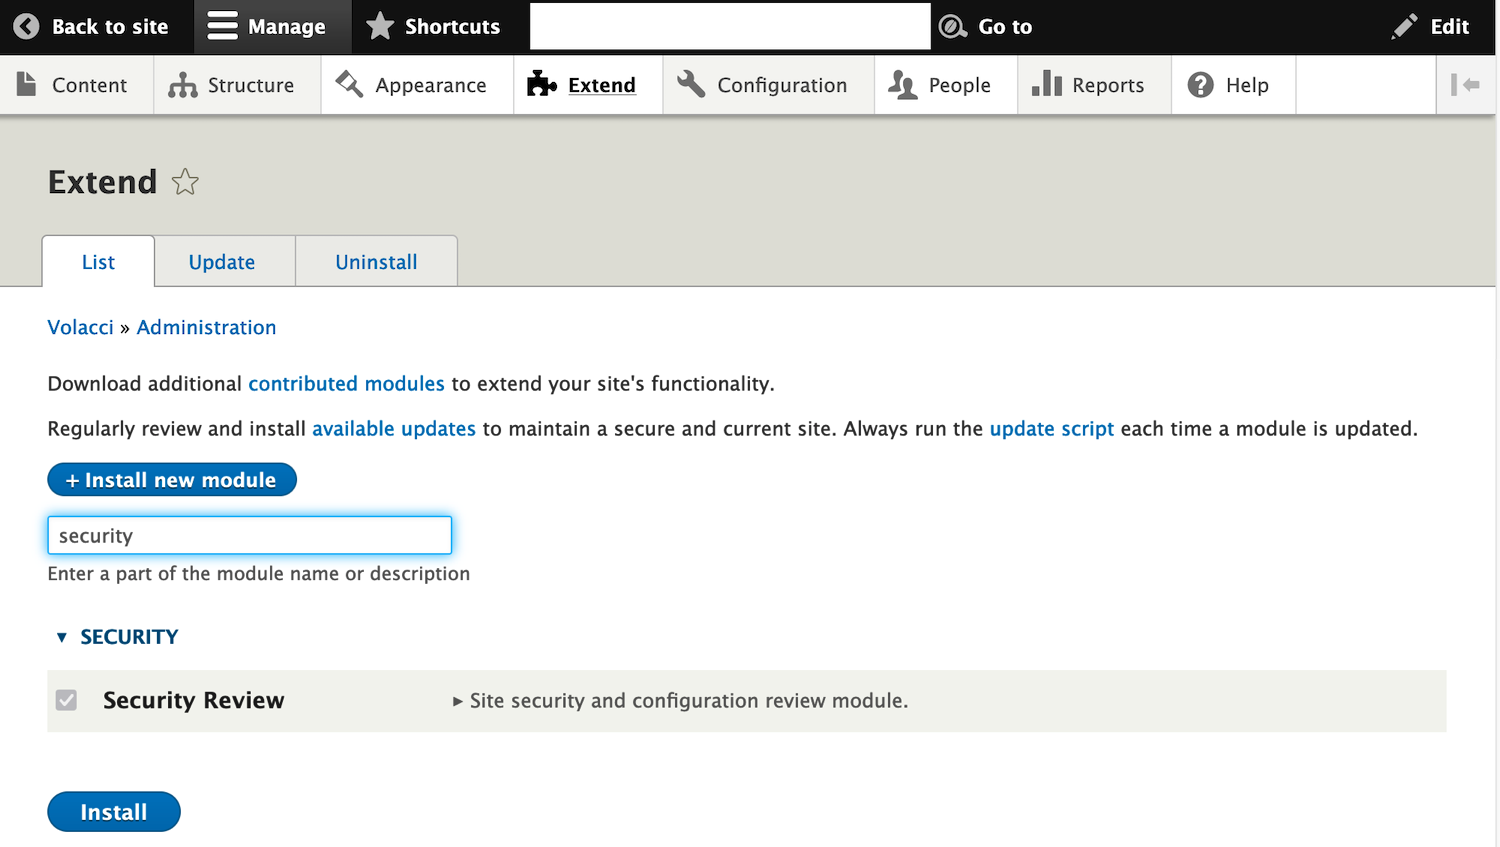 drupal security review module installation